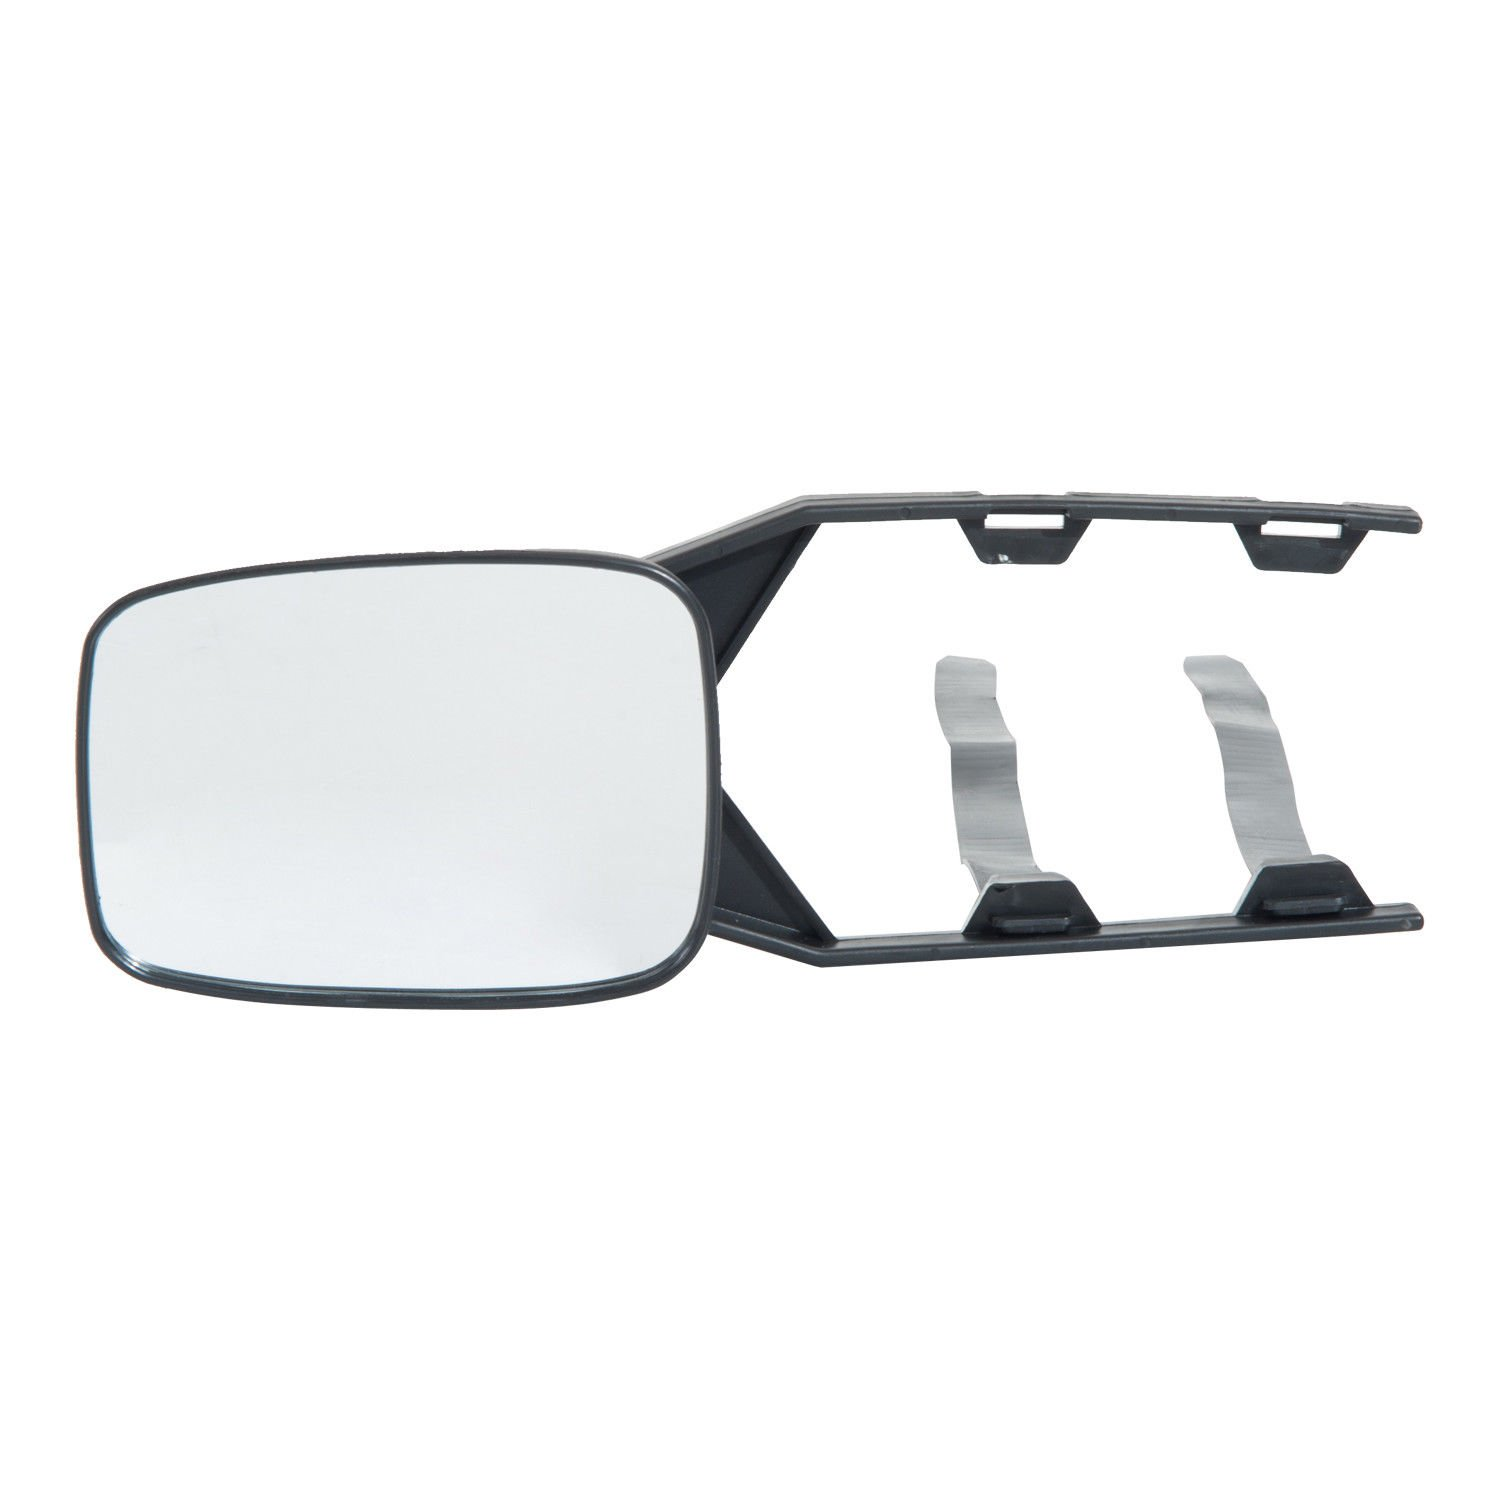 HOMCOM Set of 2 Universal Clip-on Towing Side Mirror Adjustable Extensions View Aosom Canada CAC13-0010231